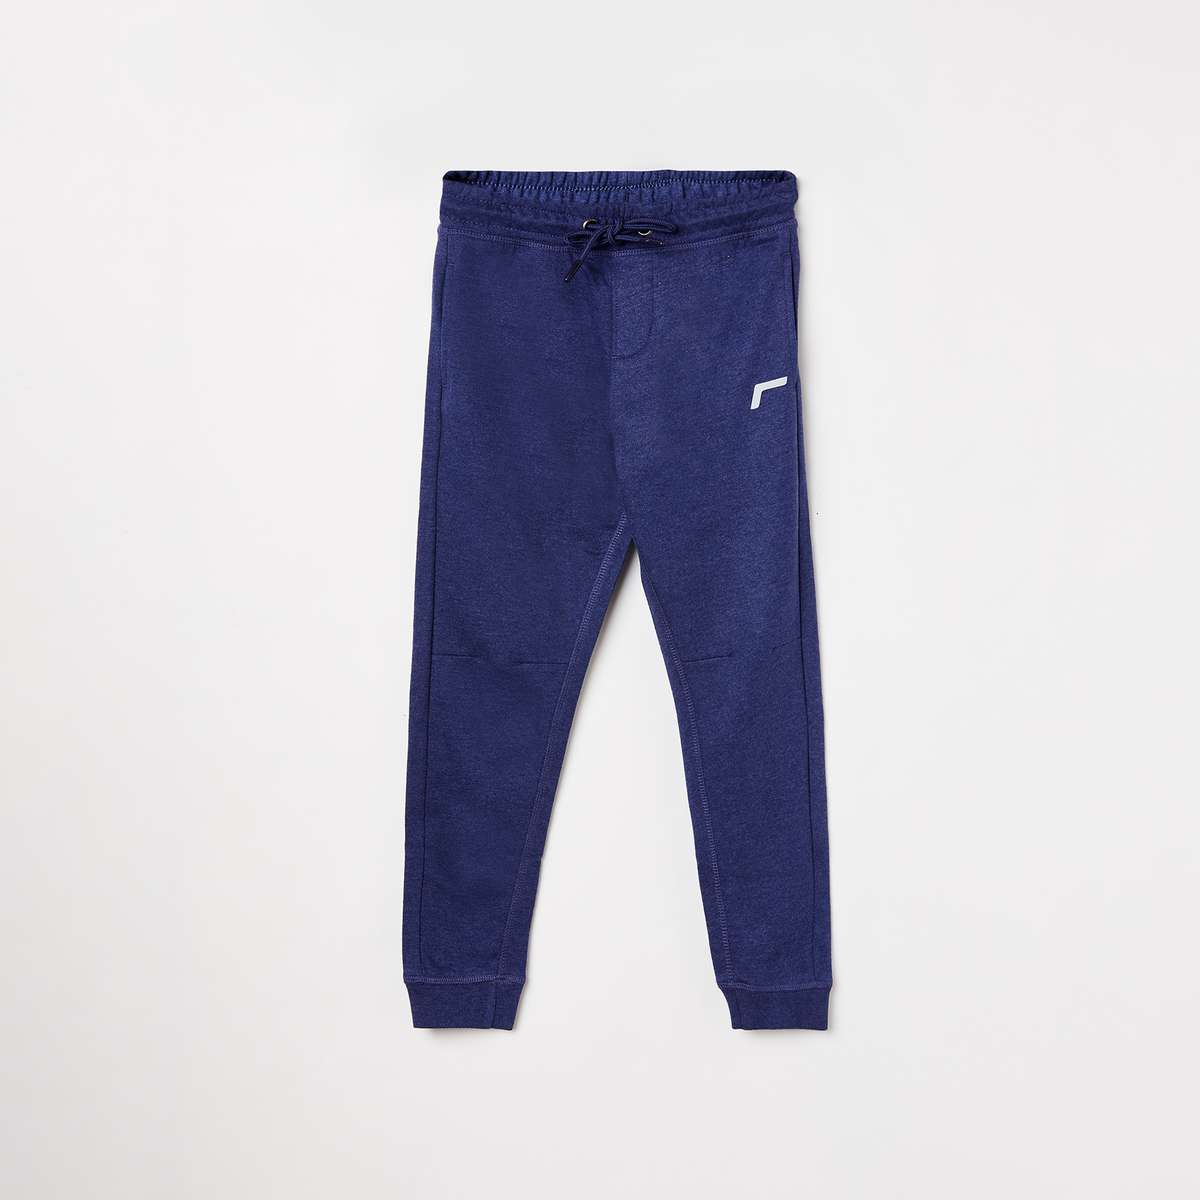 2.FAME ACTIVE Boys Solid Elasticated Joggers